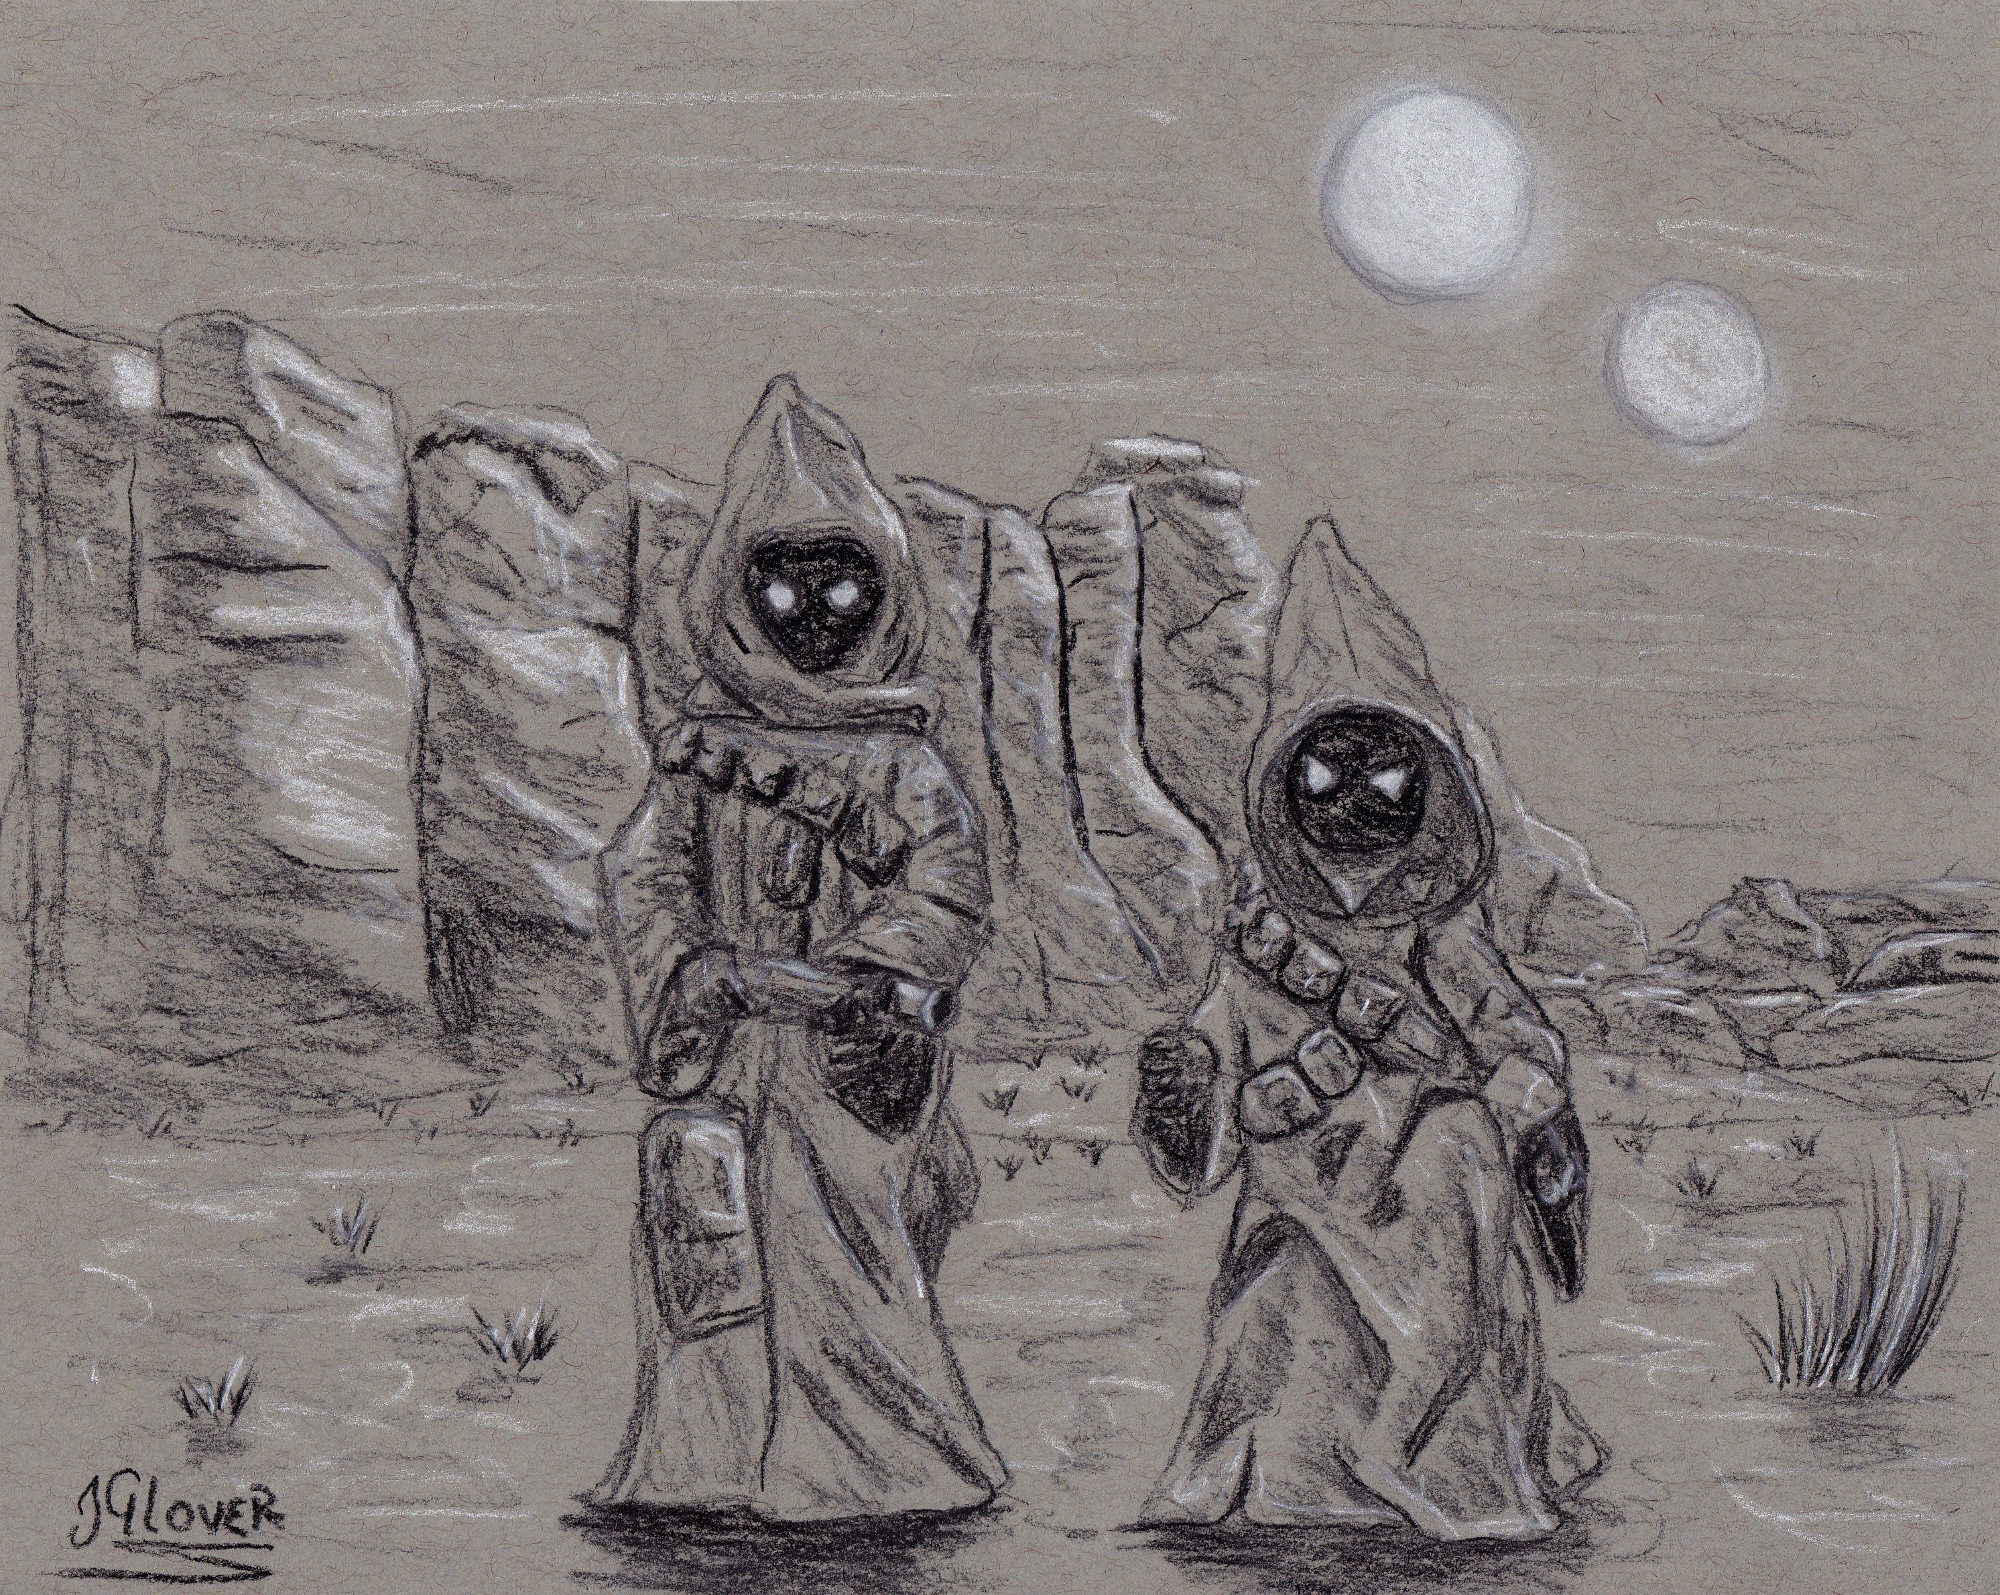 jawas - tatooine - star wars - illustration - art - charcoal - drawing